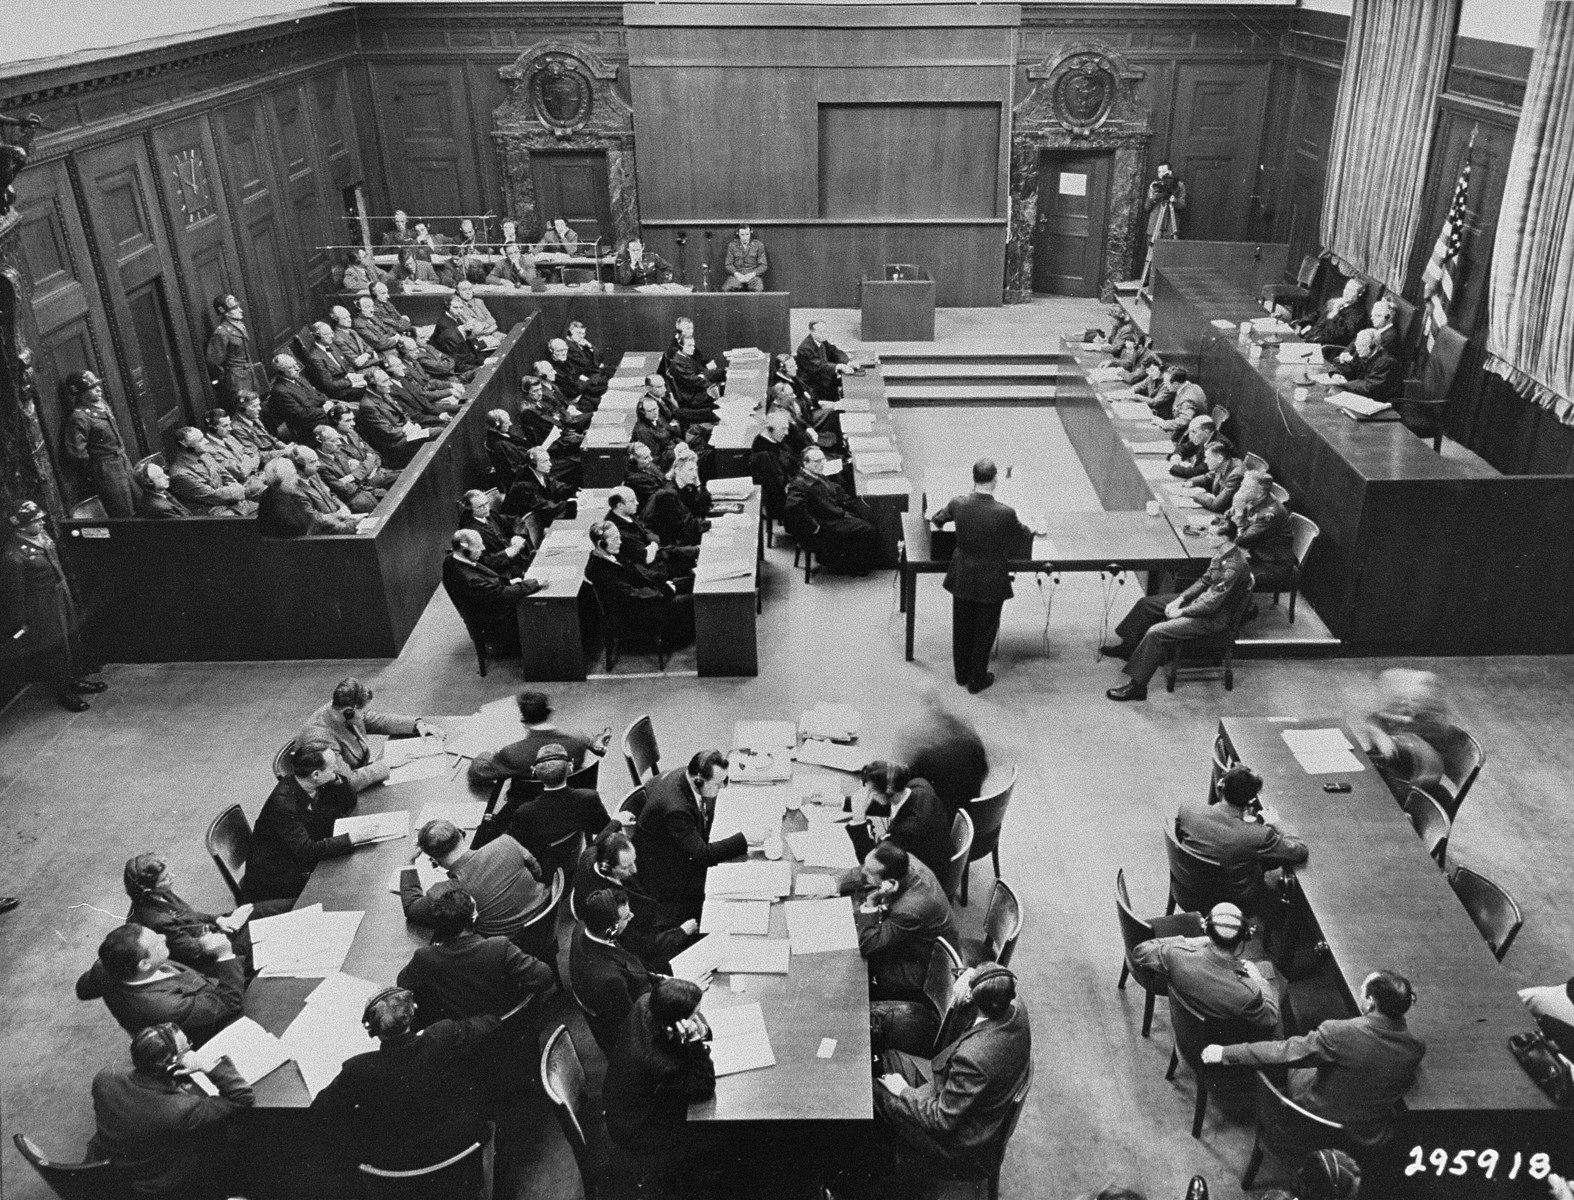 Brigadier General Telford Taylor, the U.S. Chief Counsel, delivers the prosecution's opening statement during the Ministries Trial.